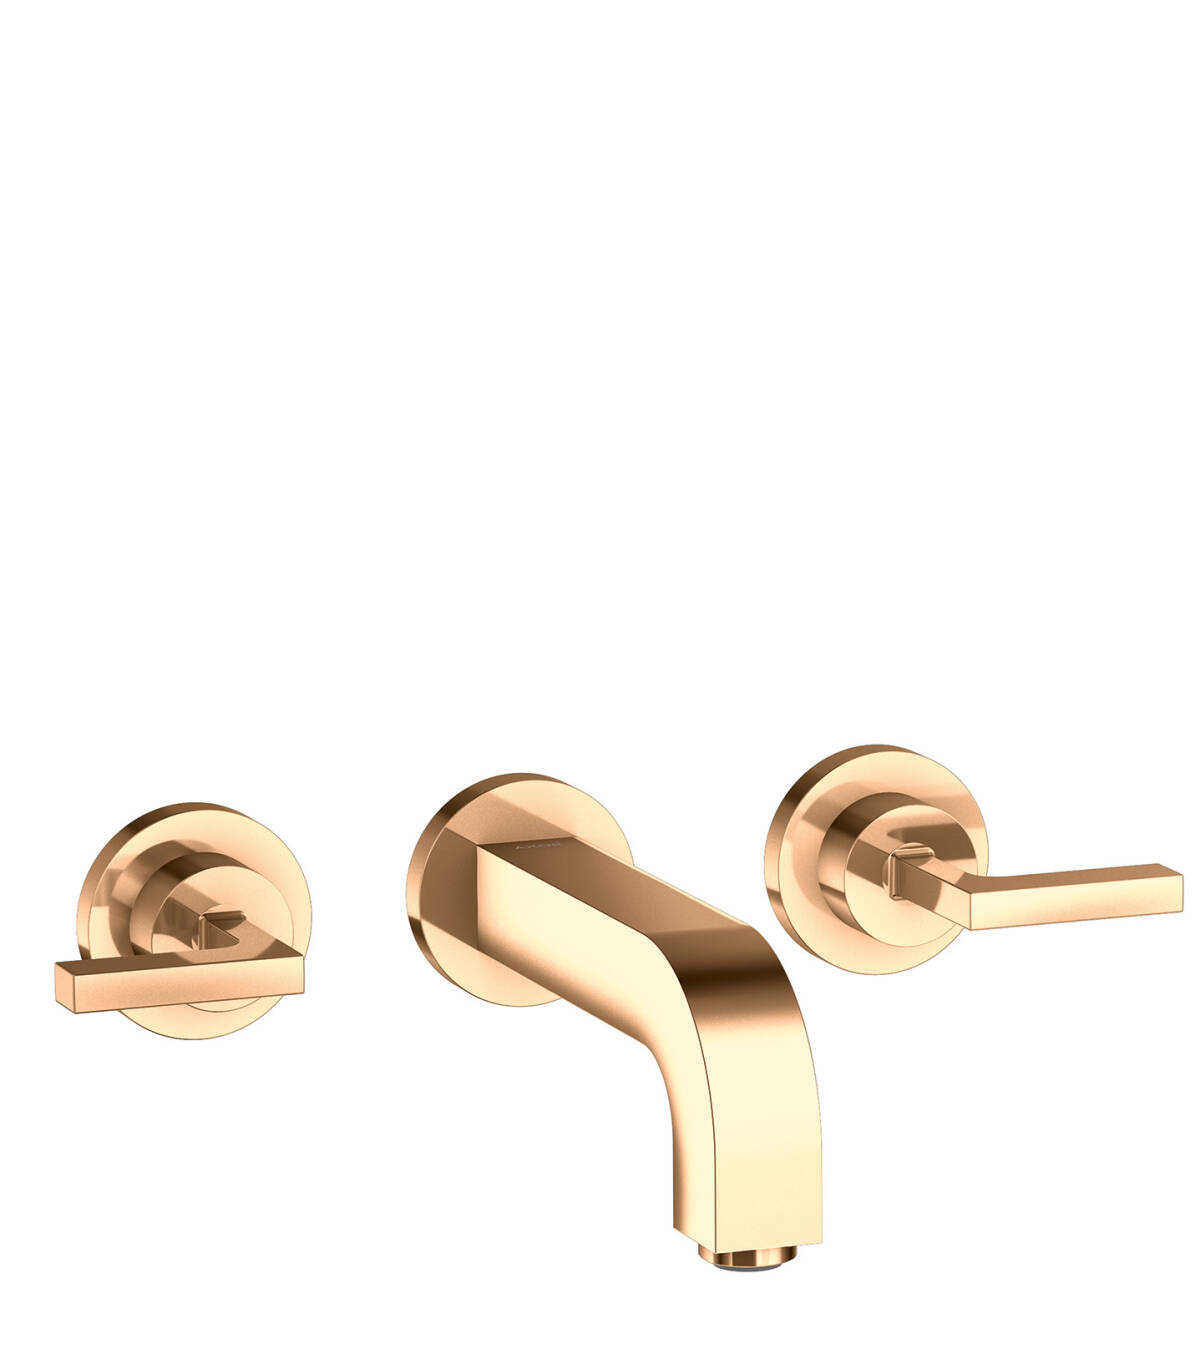 3-hole basin mixer for concealed installation with spout 162 mm, lever handles and escutcheons wall-mounted, Polished Bronze, 39315130